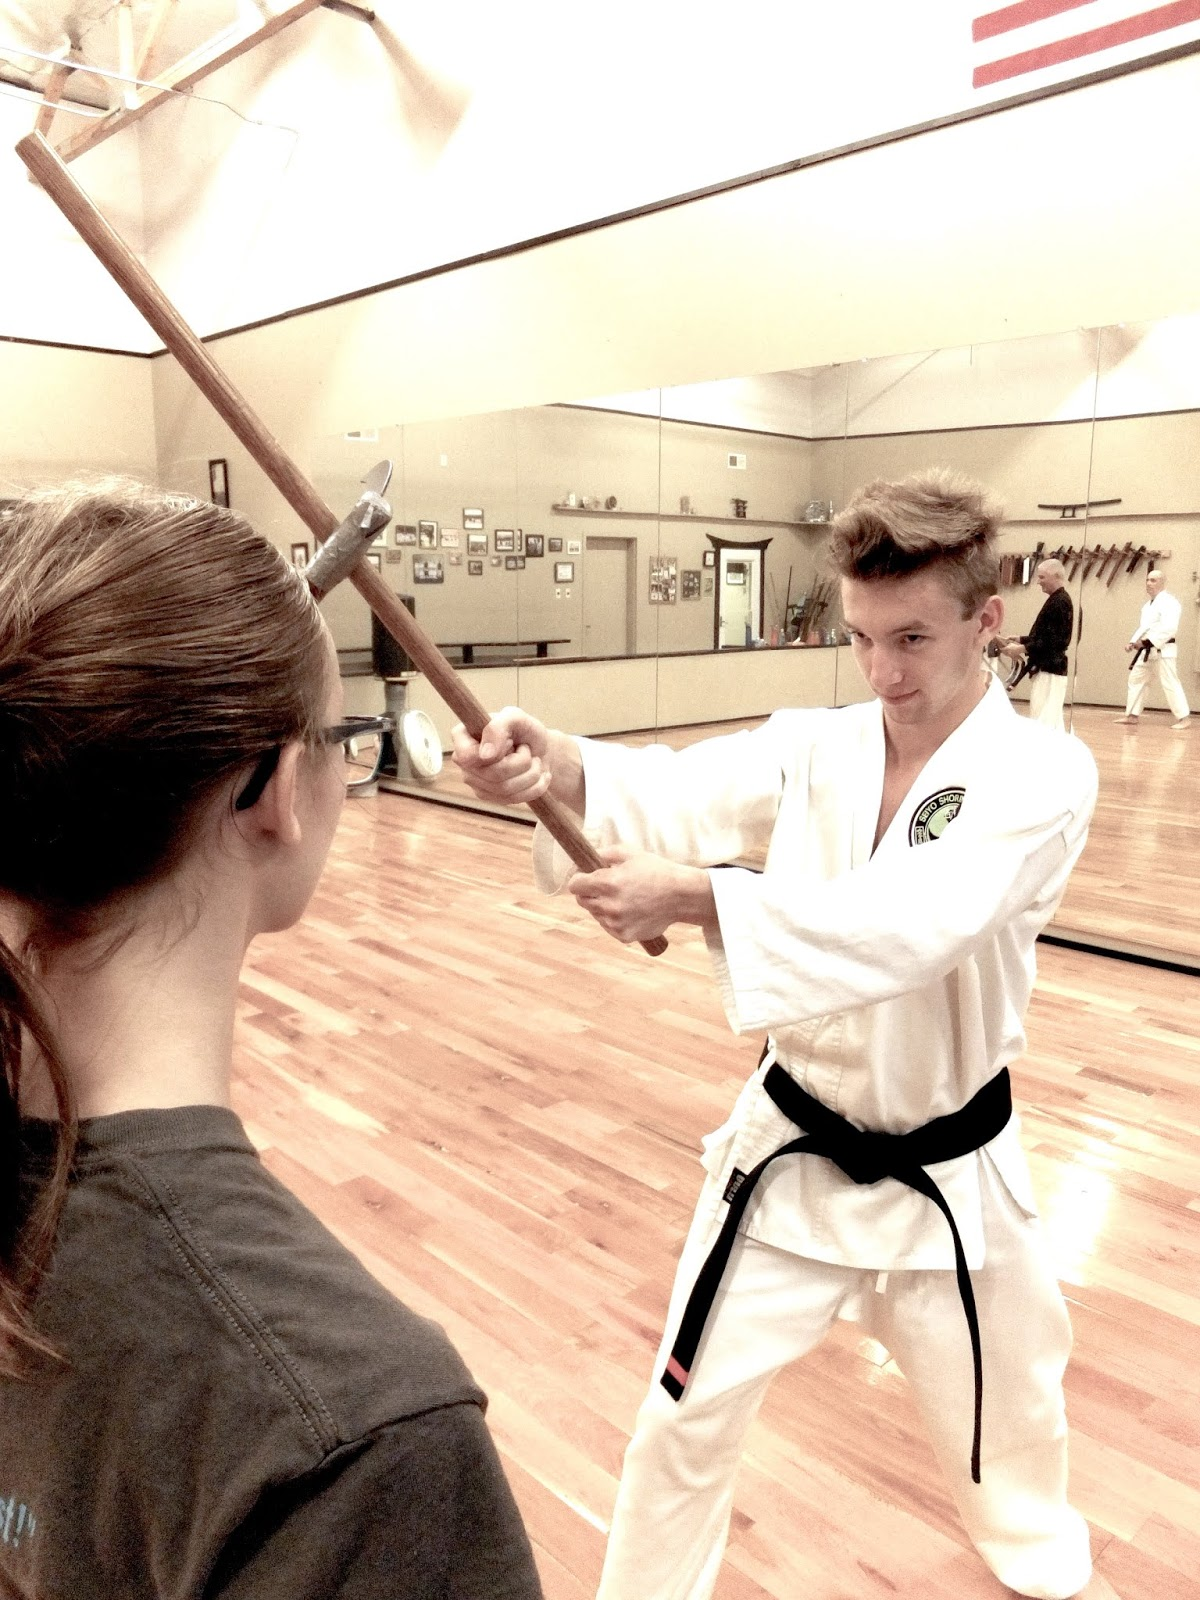 Brief Overview of Karate